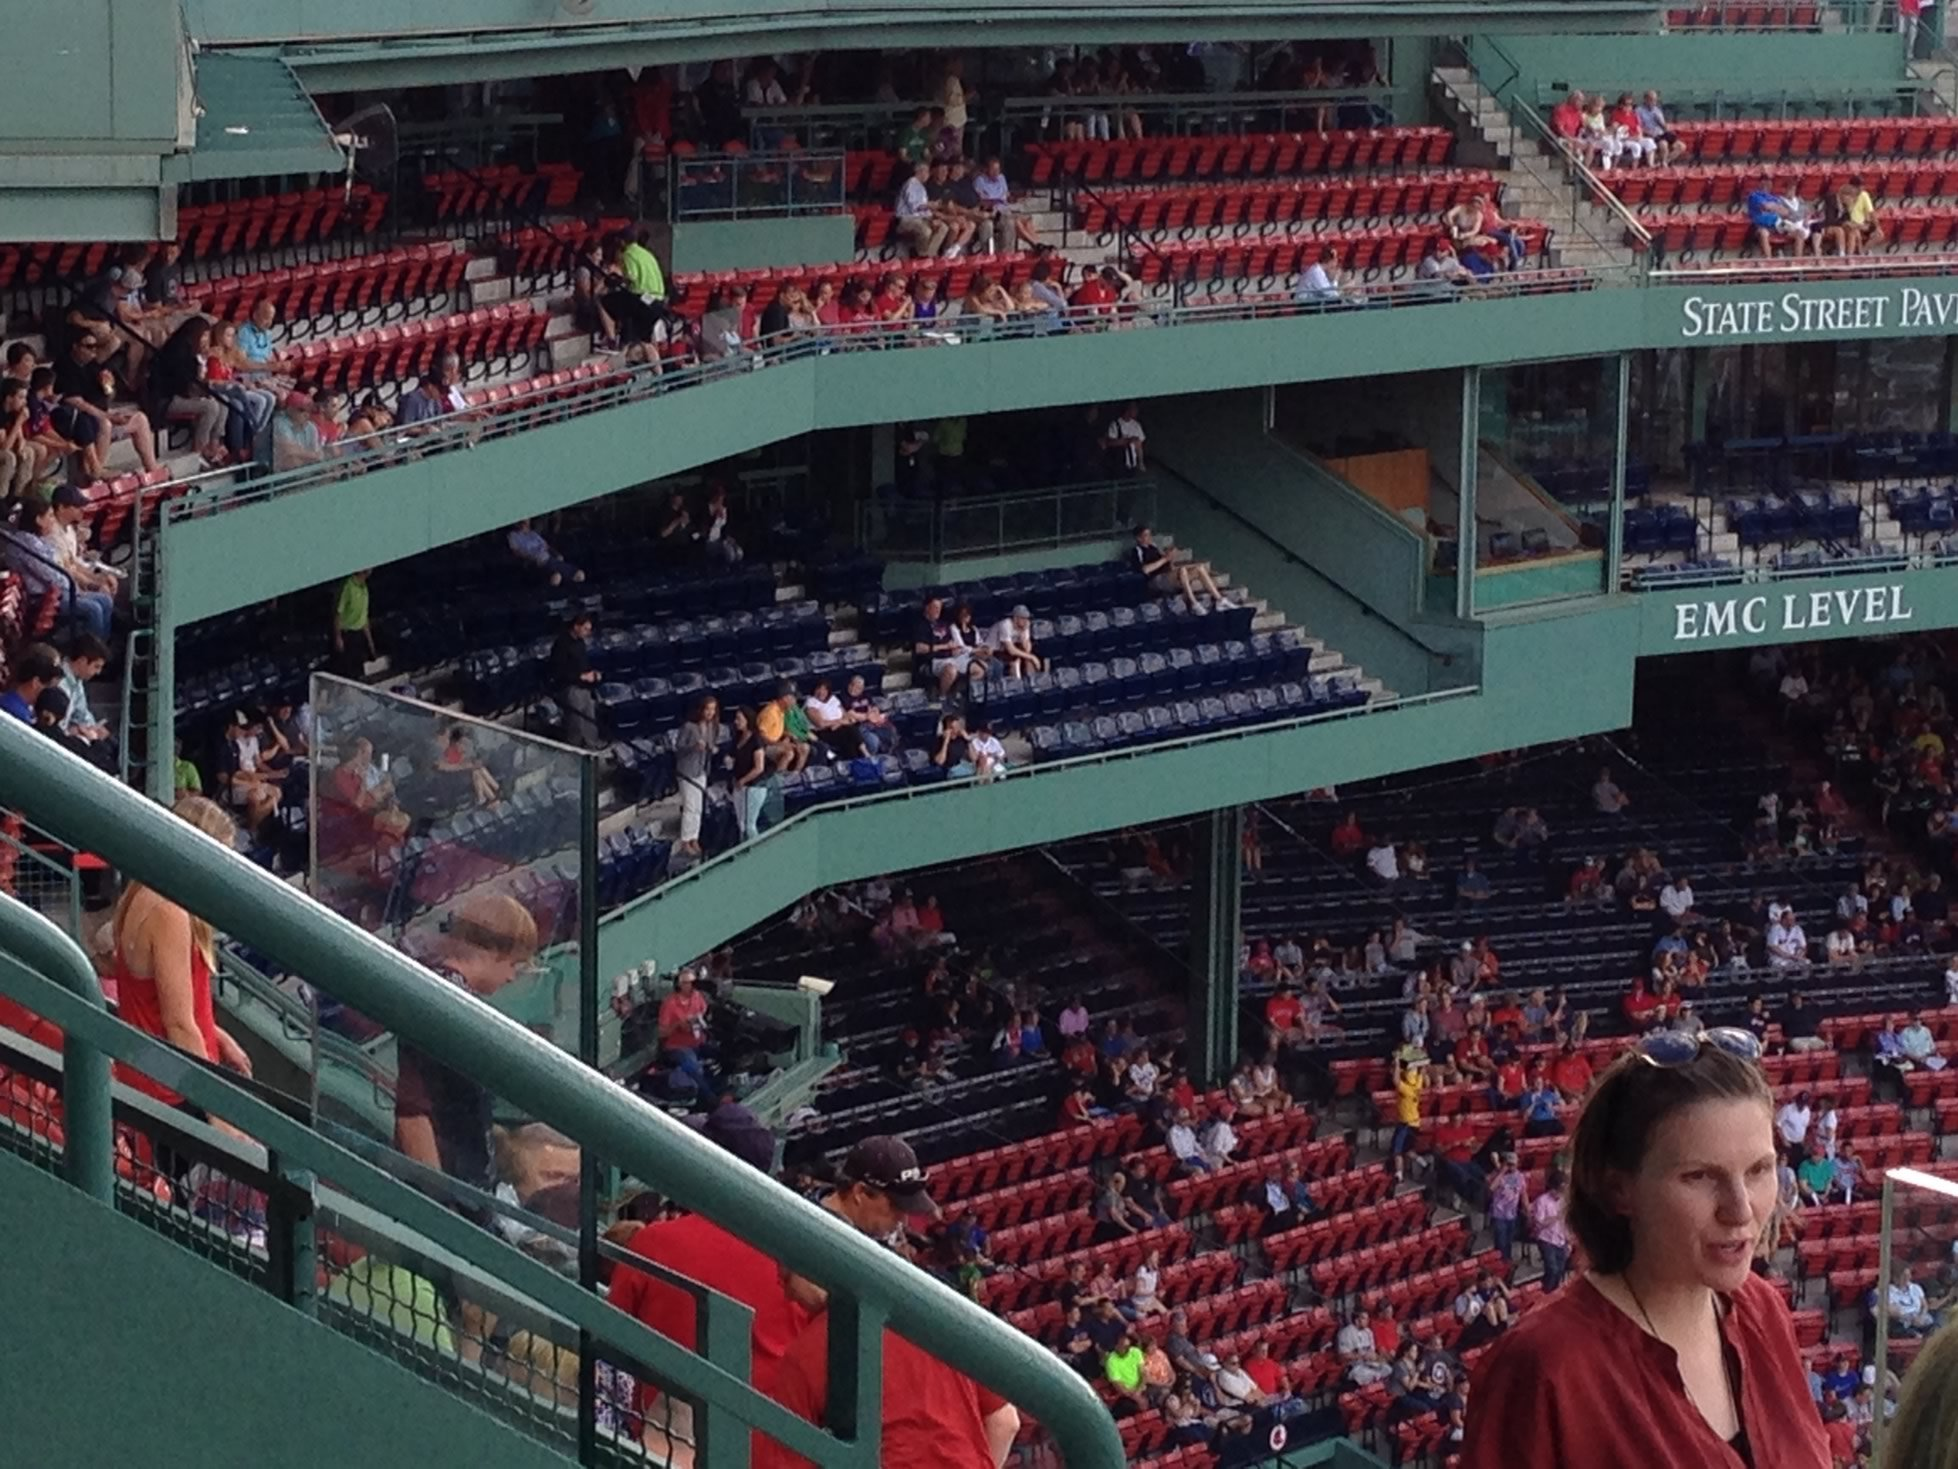 The EMC Club Seats Behind Home Plate Are Located Just Above Grandstand And Below Pavilion All At Fenway Park